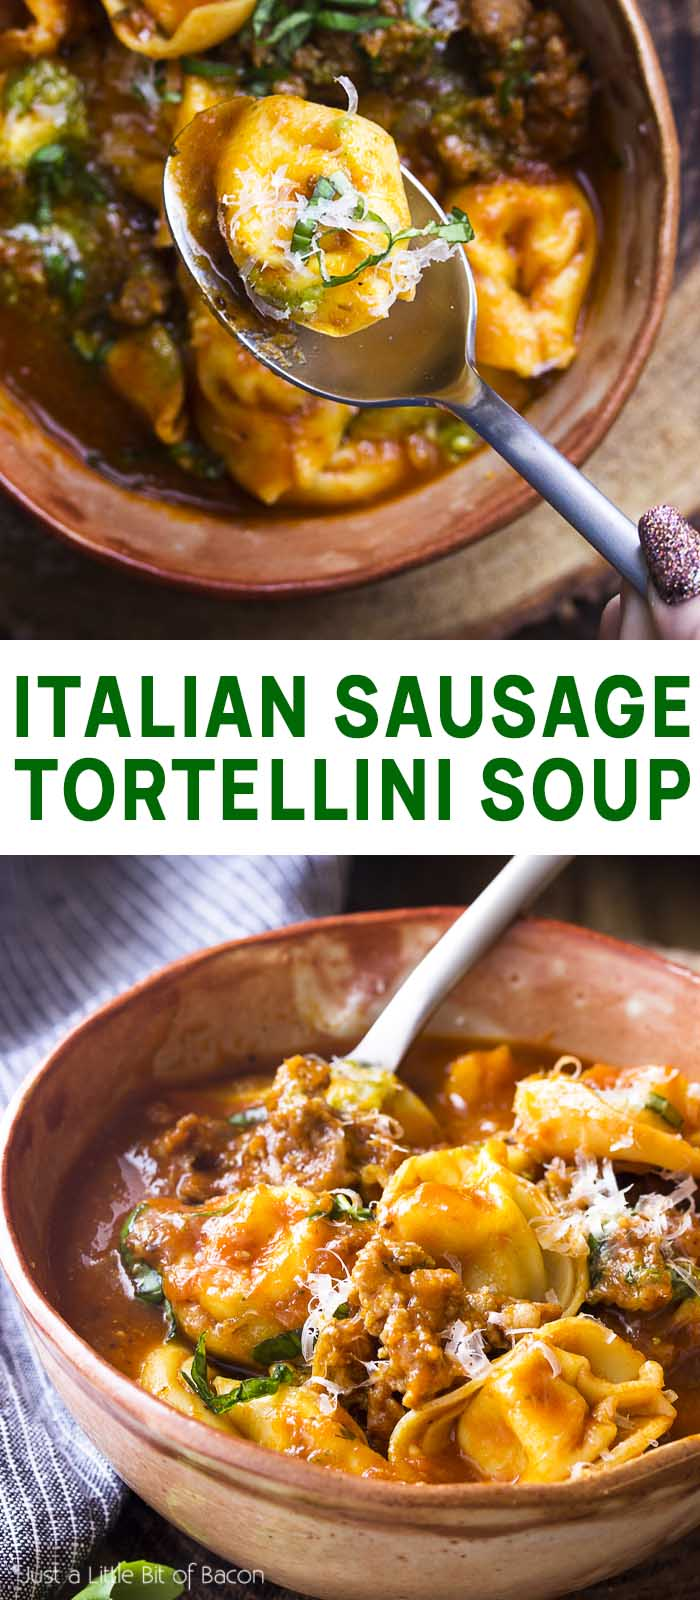 Recipe in a bowl and lifted in a spoon with text overlay - Italian Sausage Tortellini Soup.